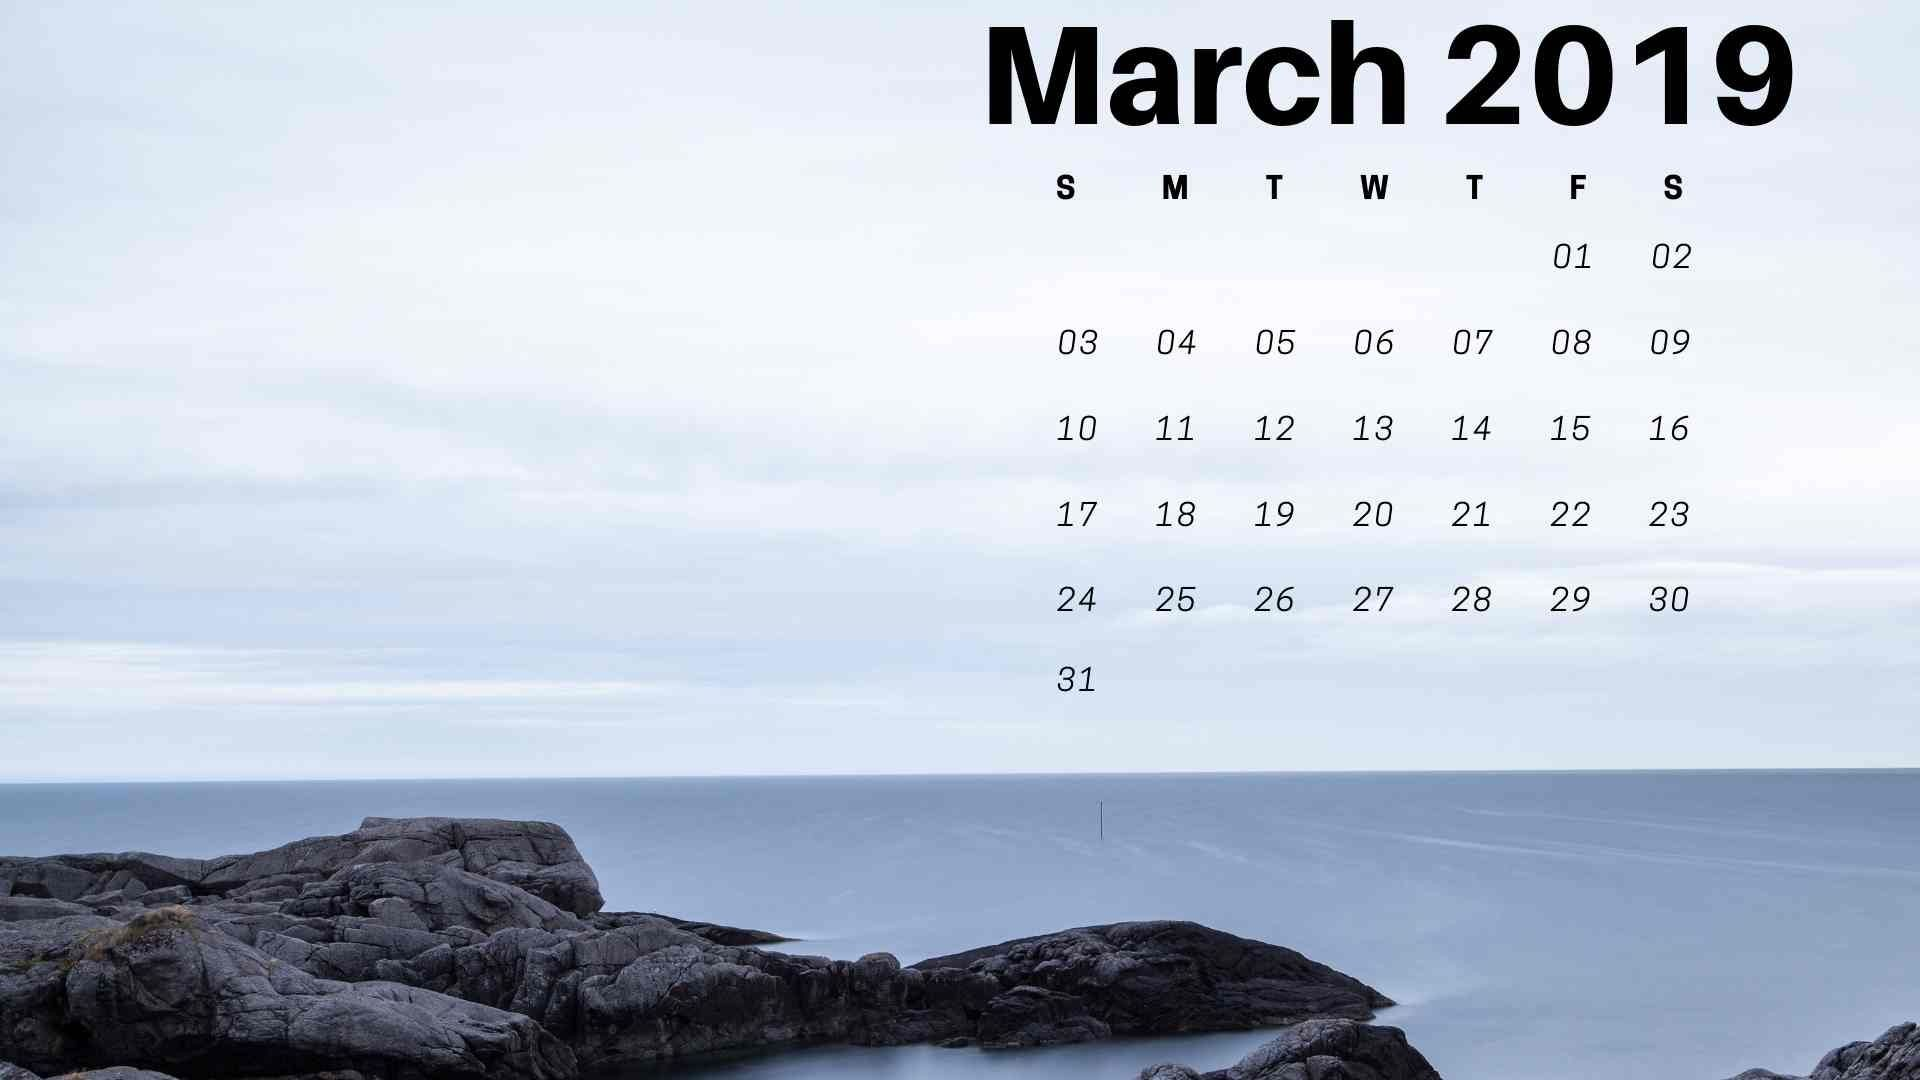 March 2019 Calendar India Más Arriba-a-fecha March 2019 Calendar Wallpaper Desktop March Calendar Calenda2019 Of March 2019 Calendar India Actual Tag India